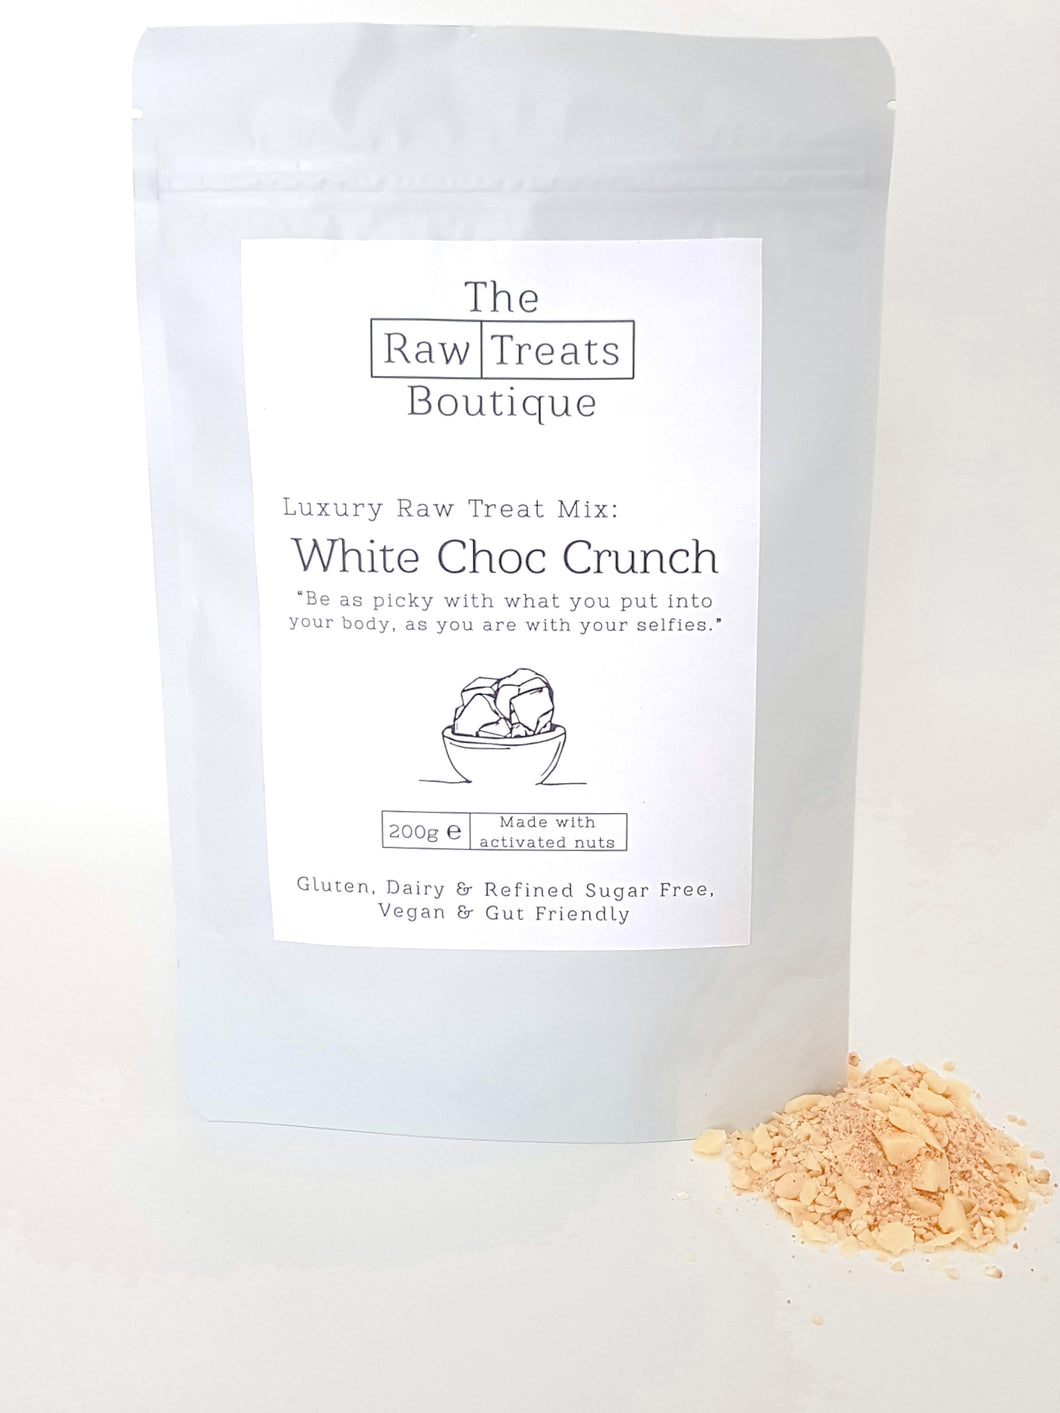 White Choc Crunch